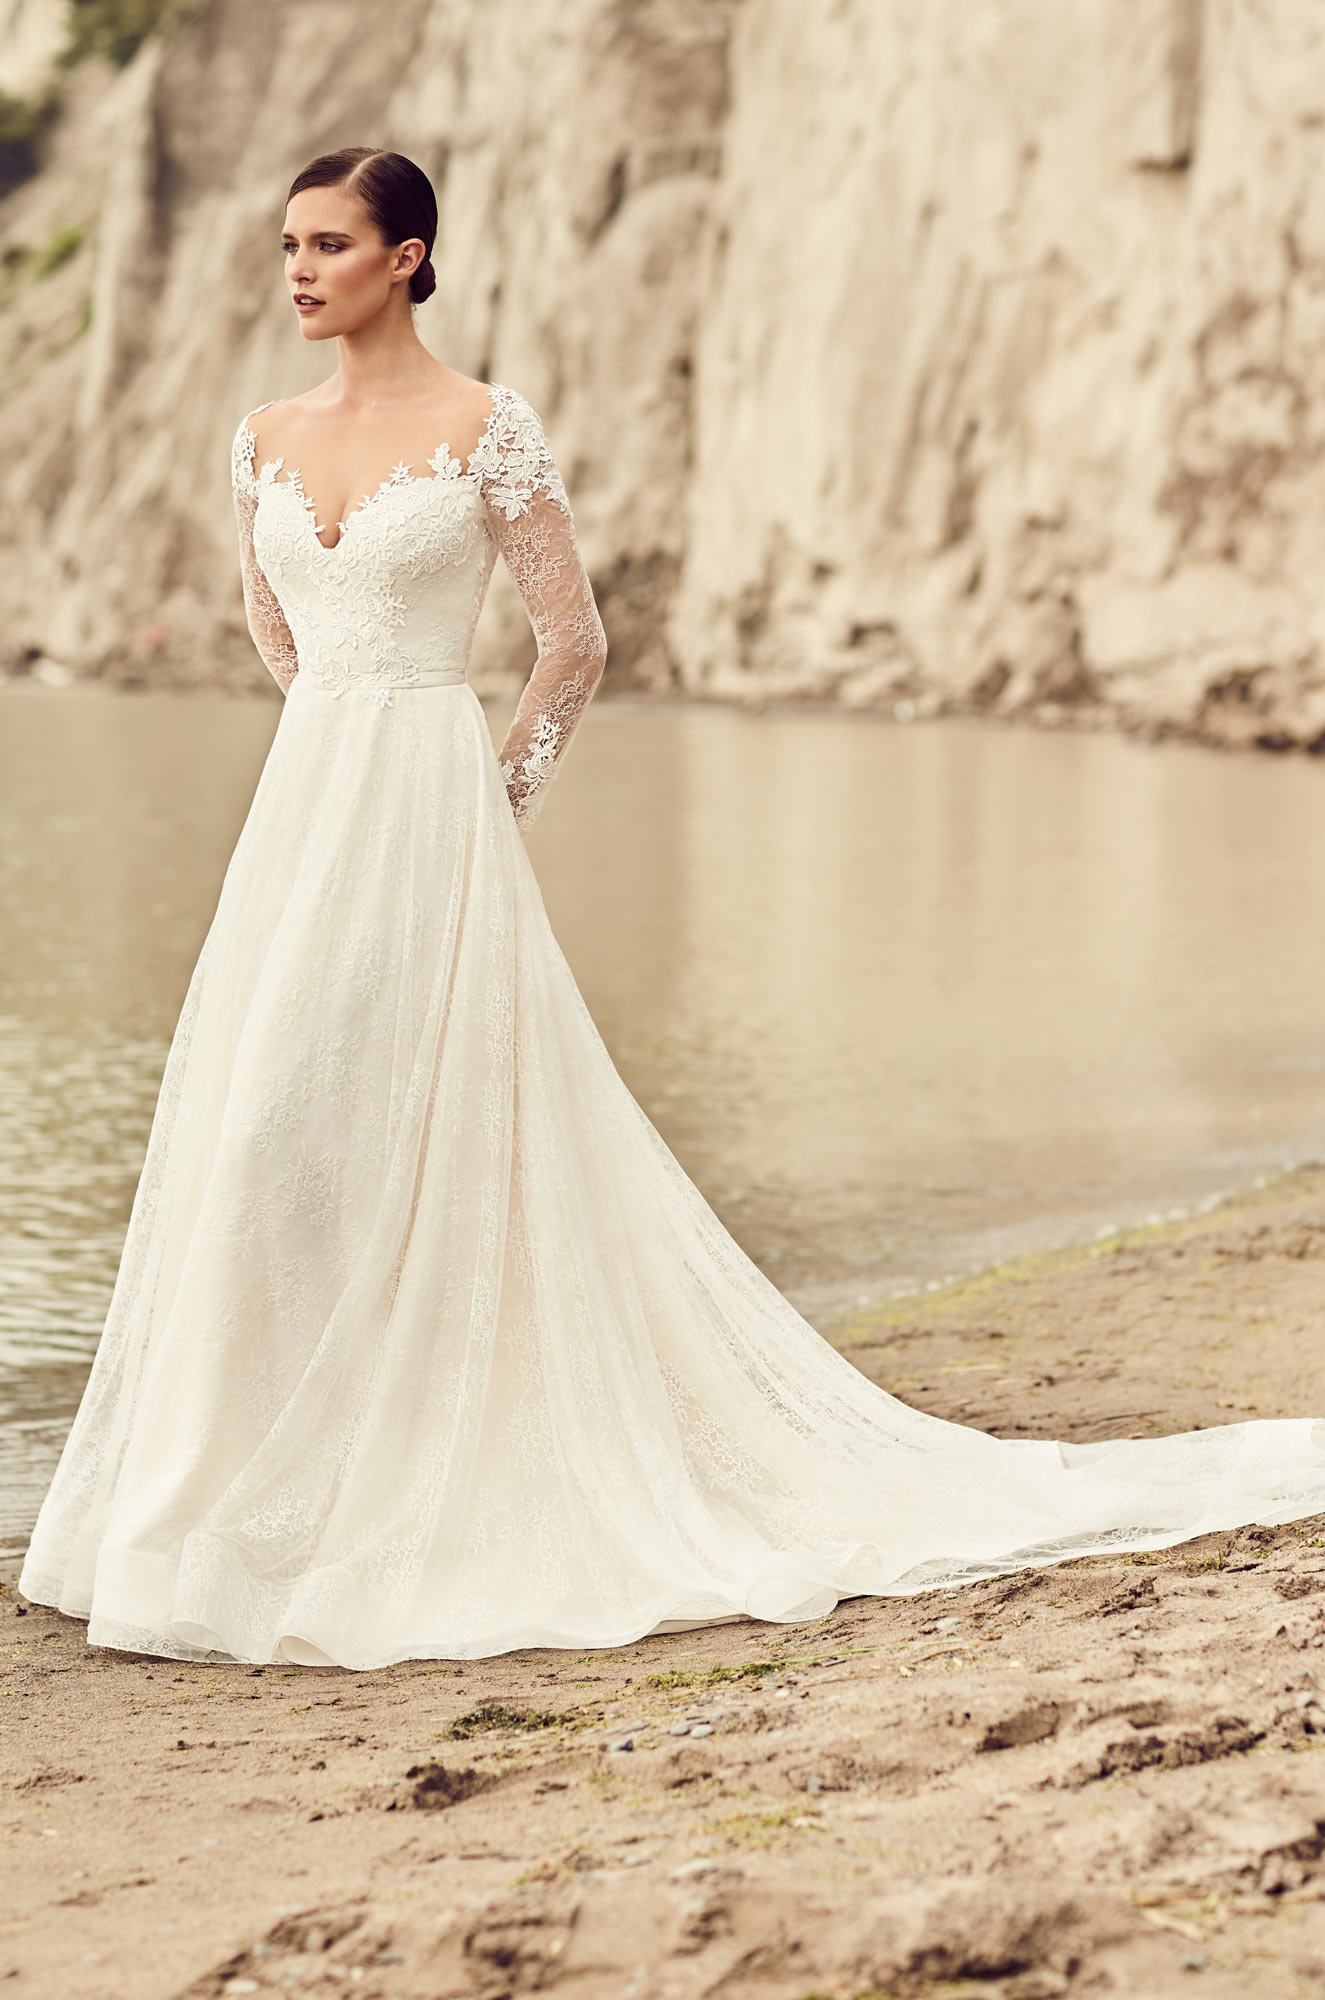 Embroidered long sleeve wedding dress style 2118 for Best wedding dresses with sleeves